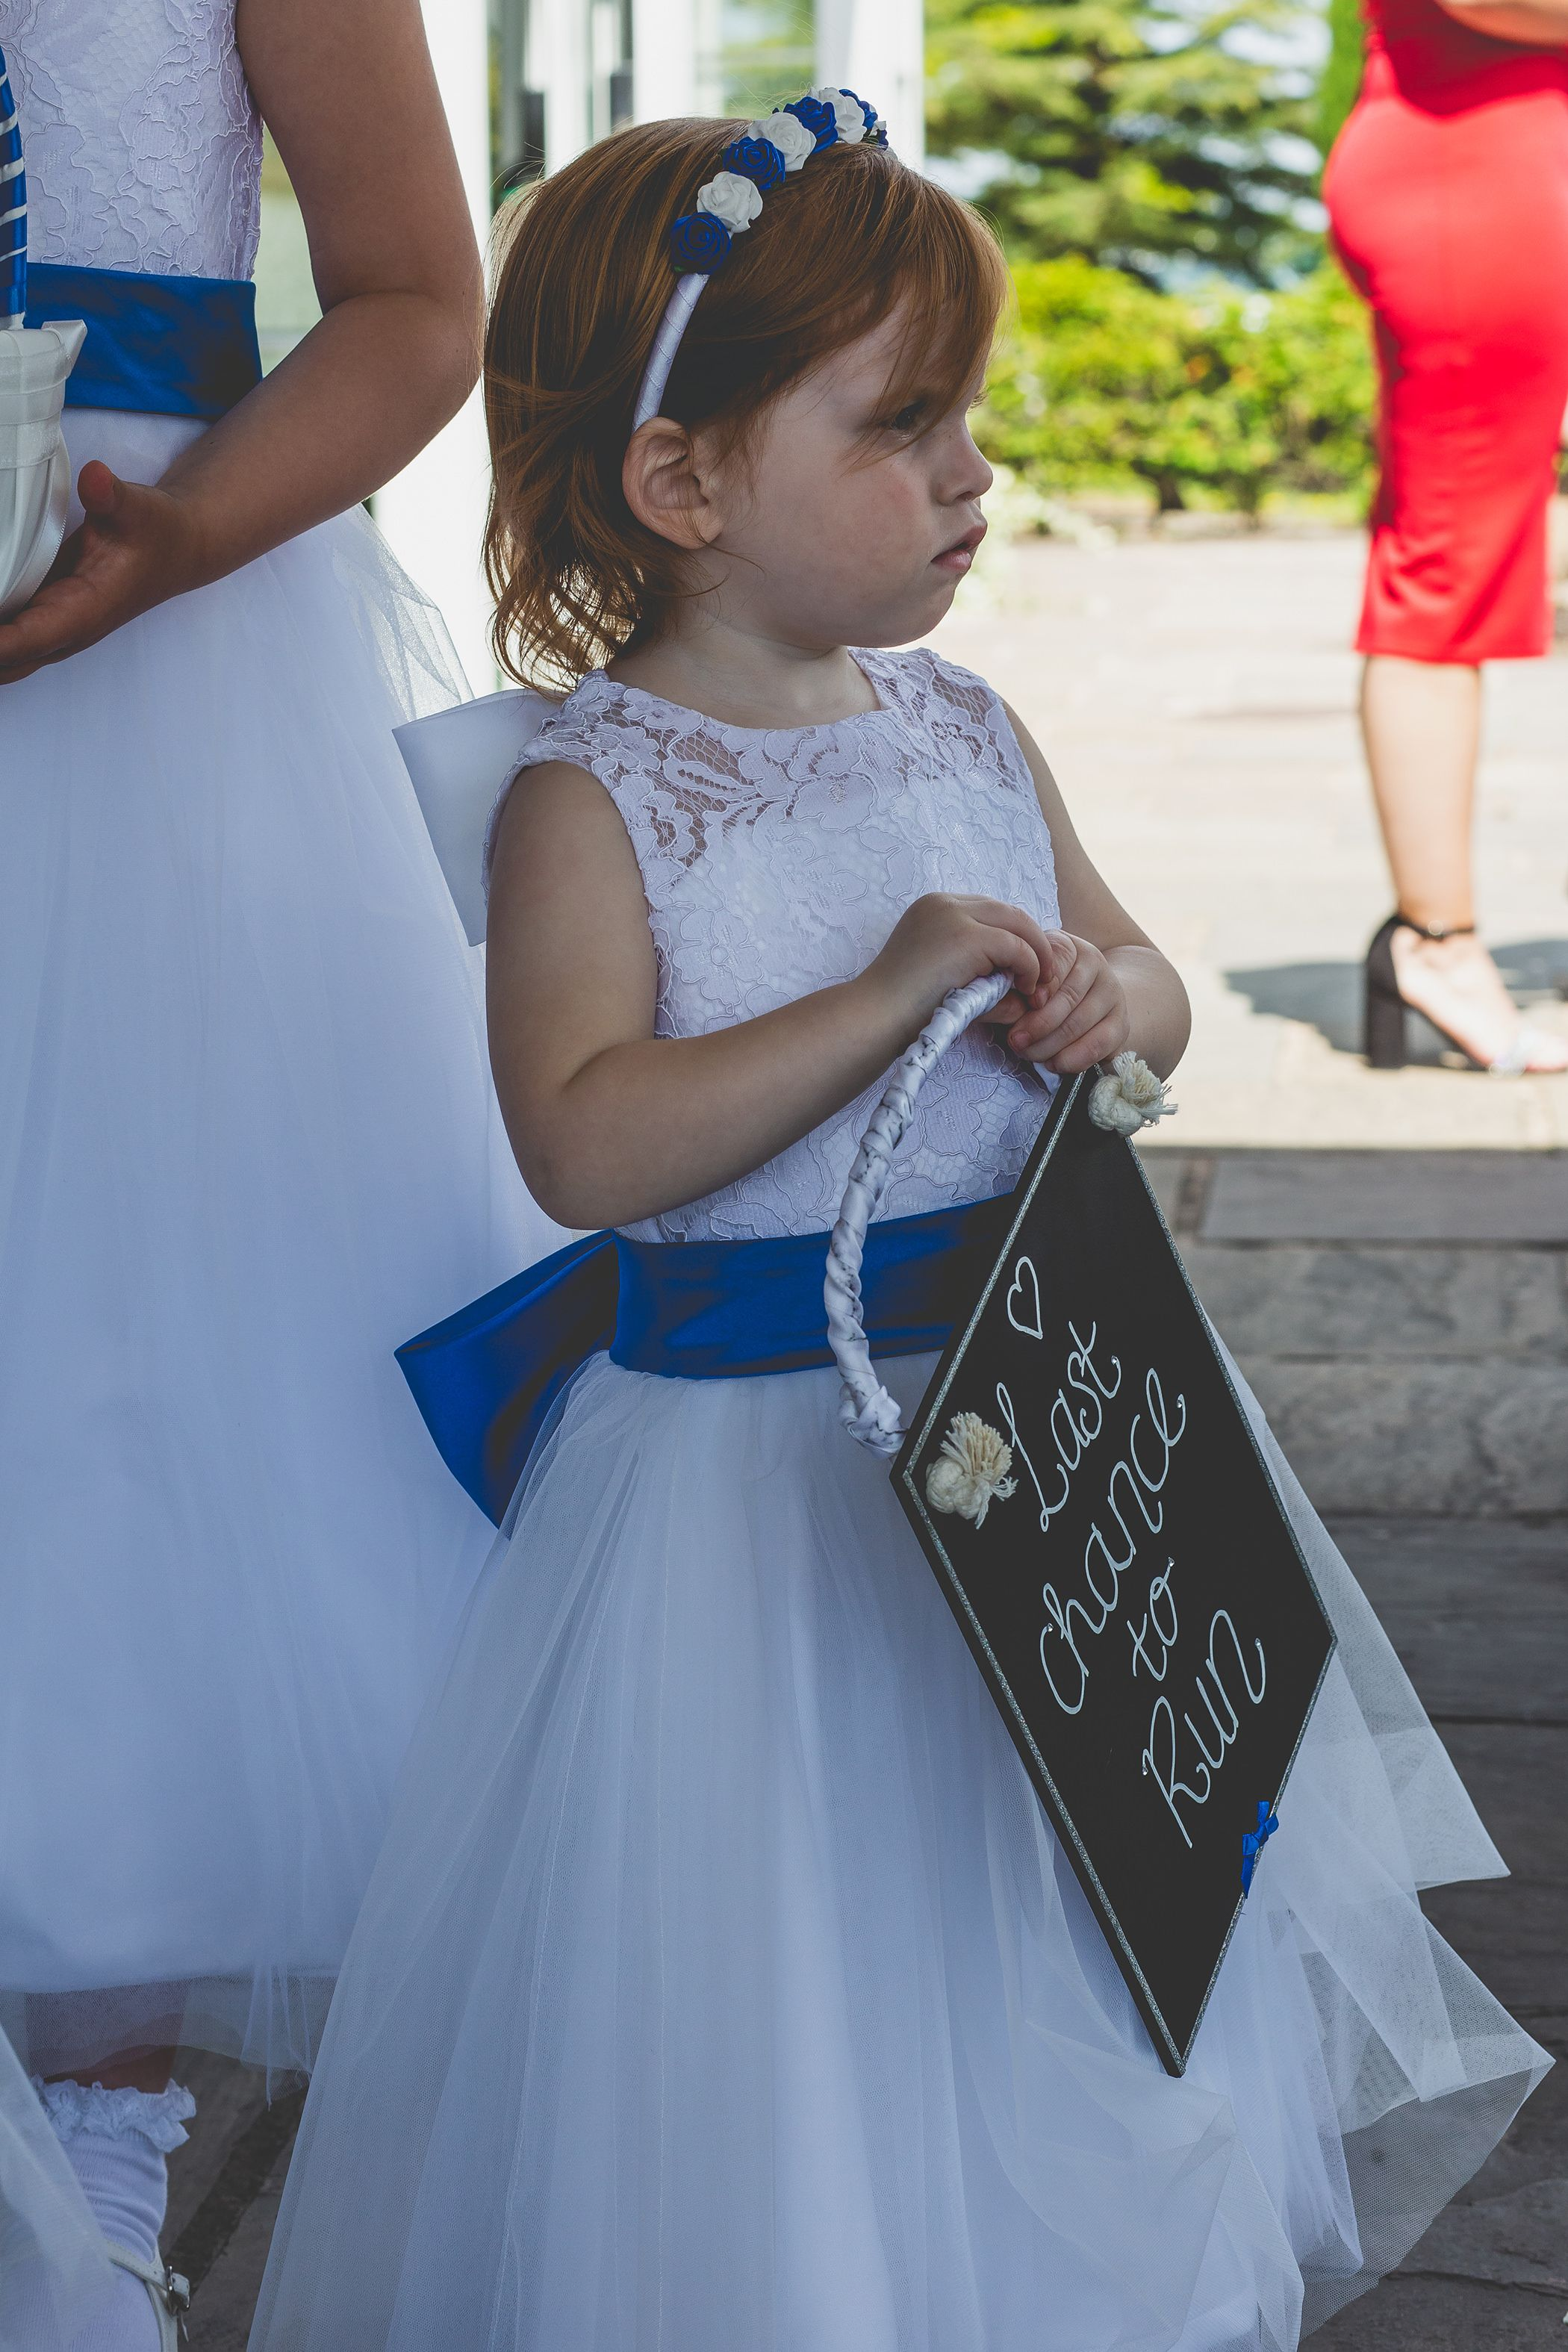 flower girl with sign